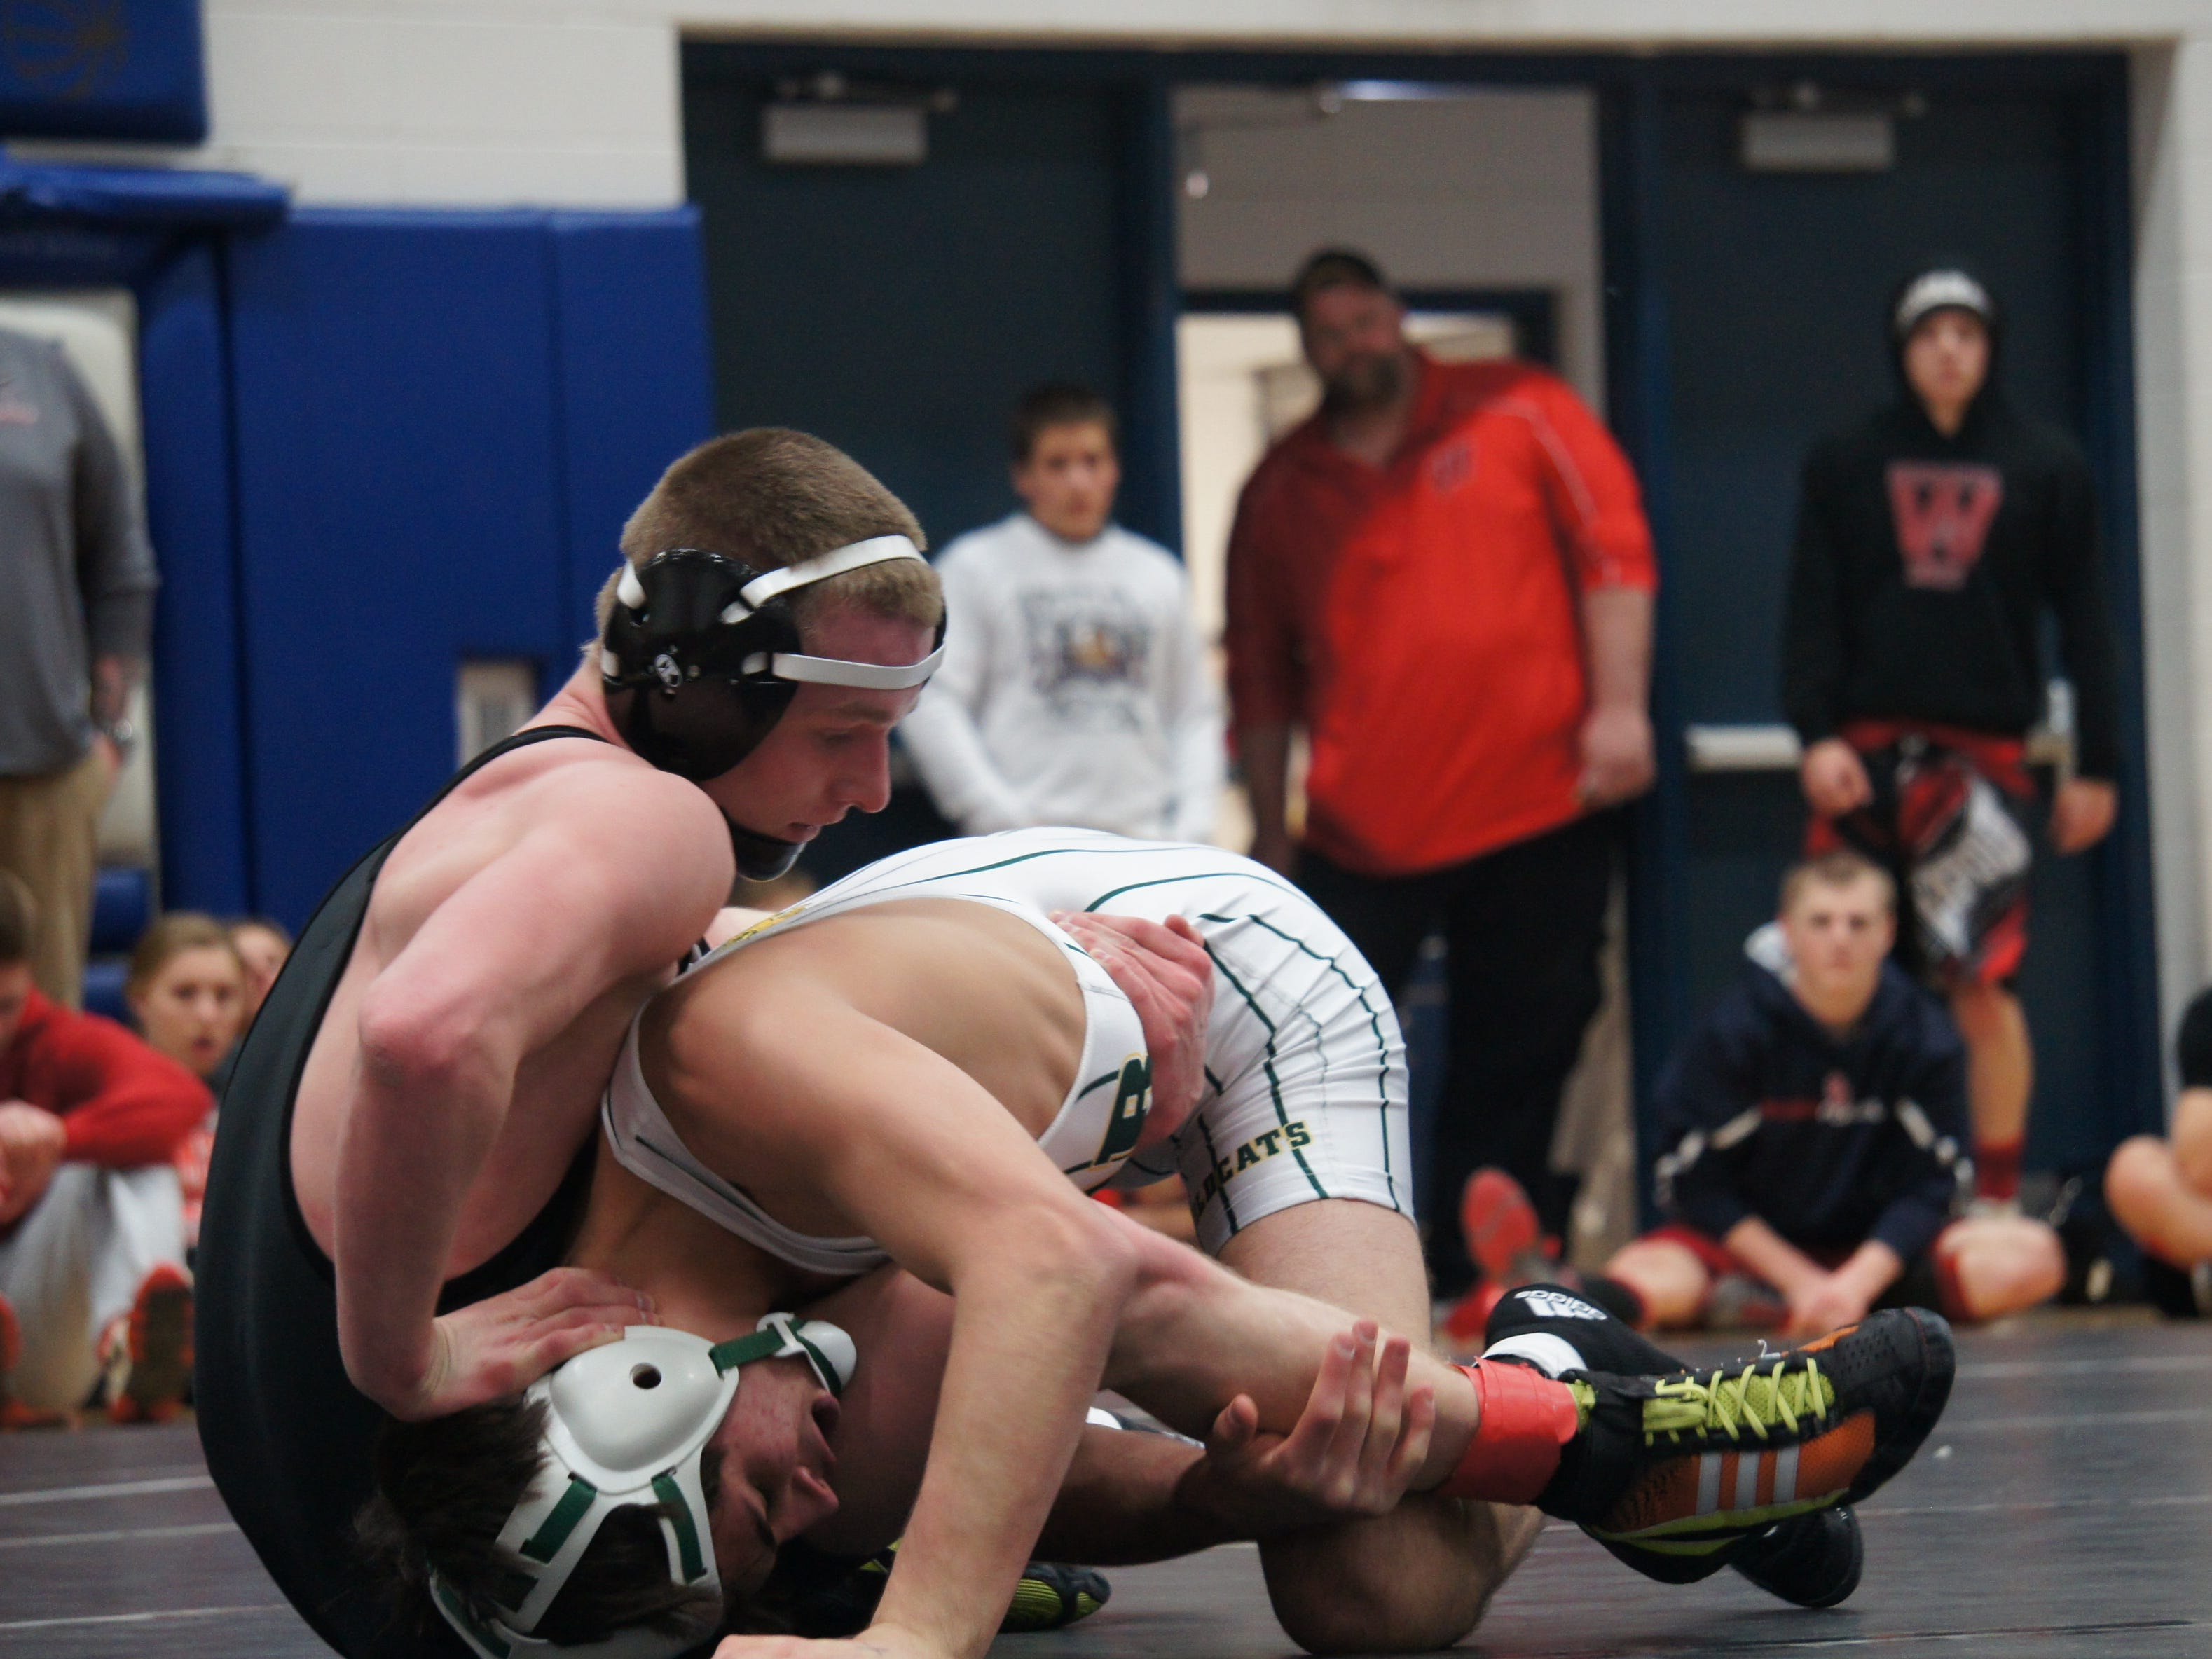 Edgar freshman Veliko Kochiu, right, works to control Stratford's Anthony Gliniecki in the 120-pound finals at the D3 regional at Auburndale on Saturday.